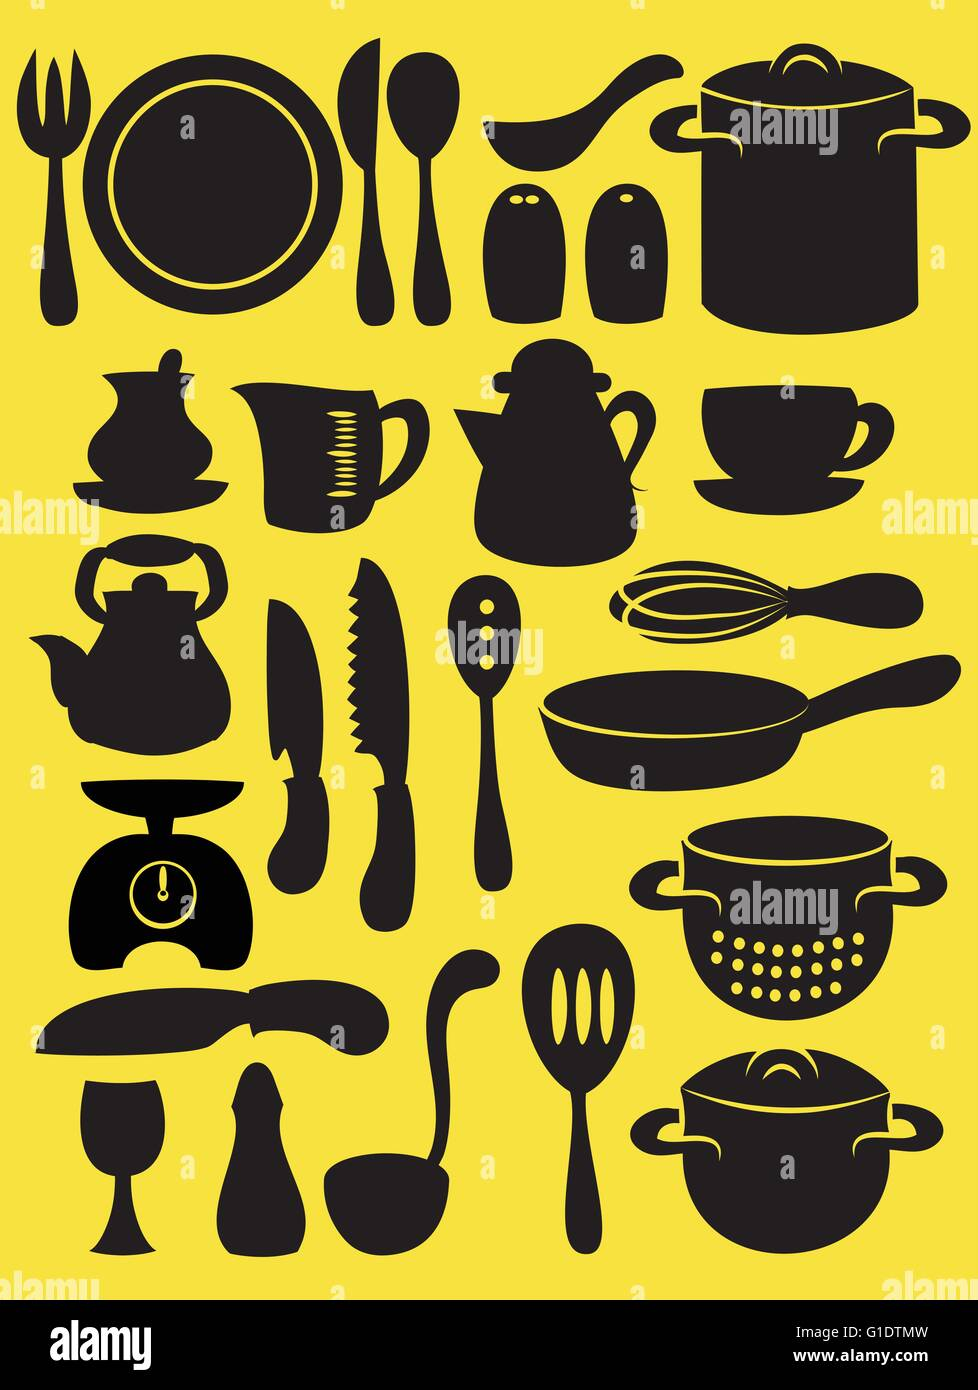 vector illustration of cooking utensil set in silhouette mode on yellow mode - Stock Image